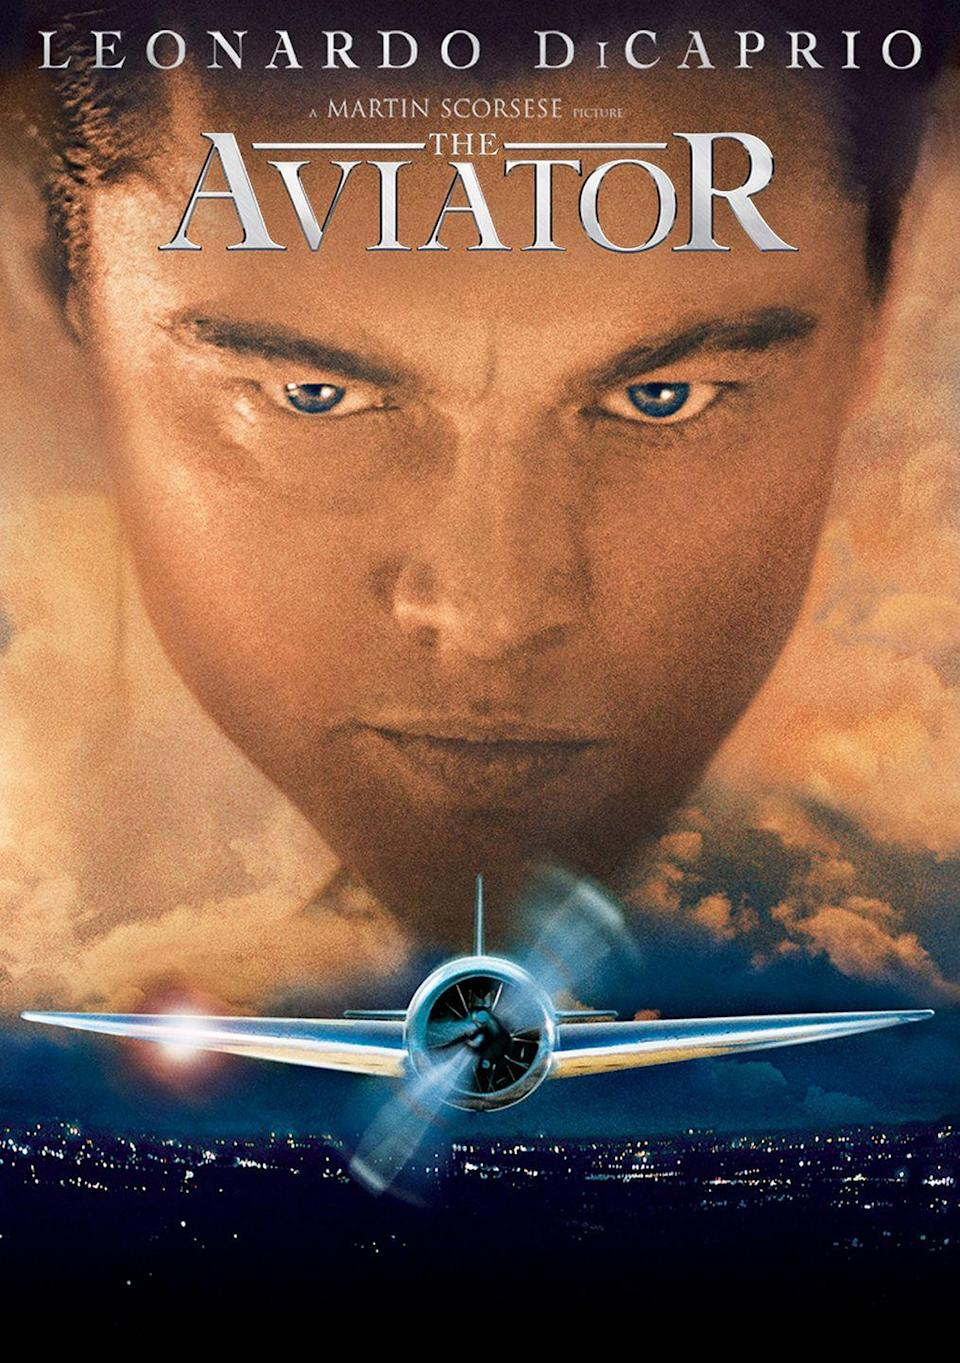 """<p><a class=""""link rapid-noclick-resp"""" href=""""https://www.amazon.com/Aviator-Leonardo-DiCaprio/dp/B001N09BDS?tag=syn-yahoo-20&ascsubtag=%5Bartid%7C10063.g.35716832%5Bsrc%7Cyahoo-us"""" rel=""""nofollow noopener"""" target=""""_blank"""" data-ylk=""""slk:Watch Now"""">Watch Now </a></p><p>Leonardo DiCaprio stars in this Academy Award-winning biopic of the enigmatically brilliant billionaire Howard Hughes, from his early years as a film director and aviation enthusiast to his downward spiral into the mental illness and phobia that would define the tycoon's later years. </p>"""